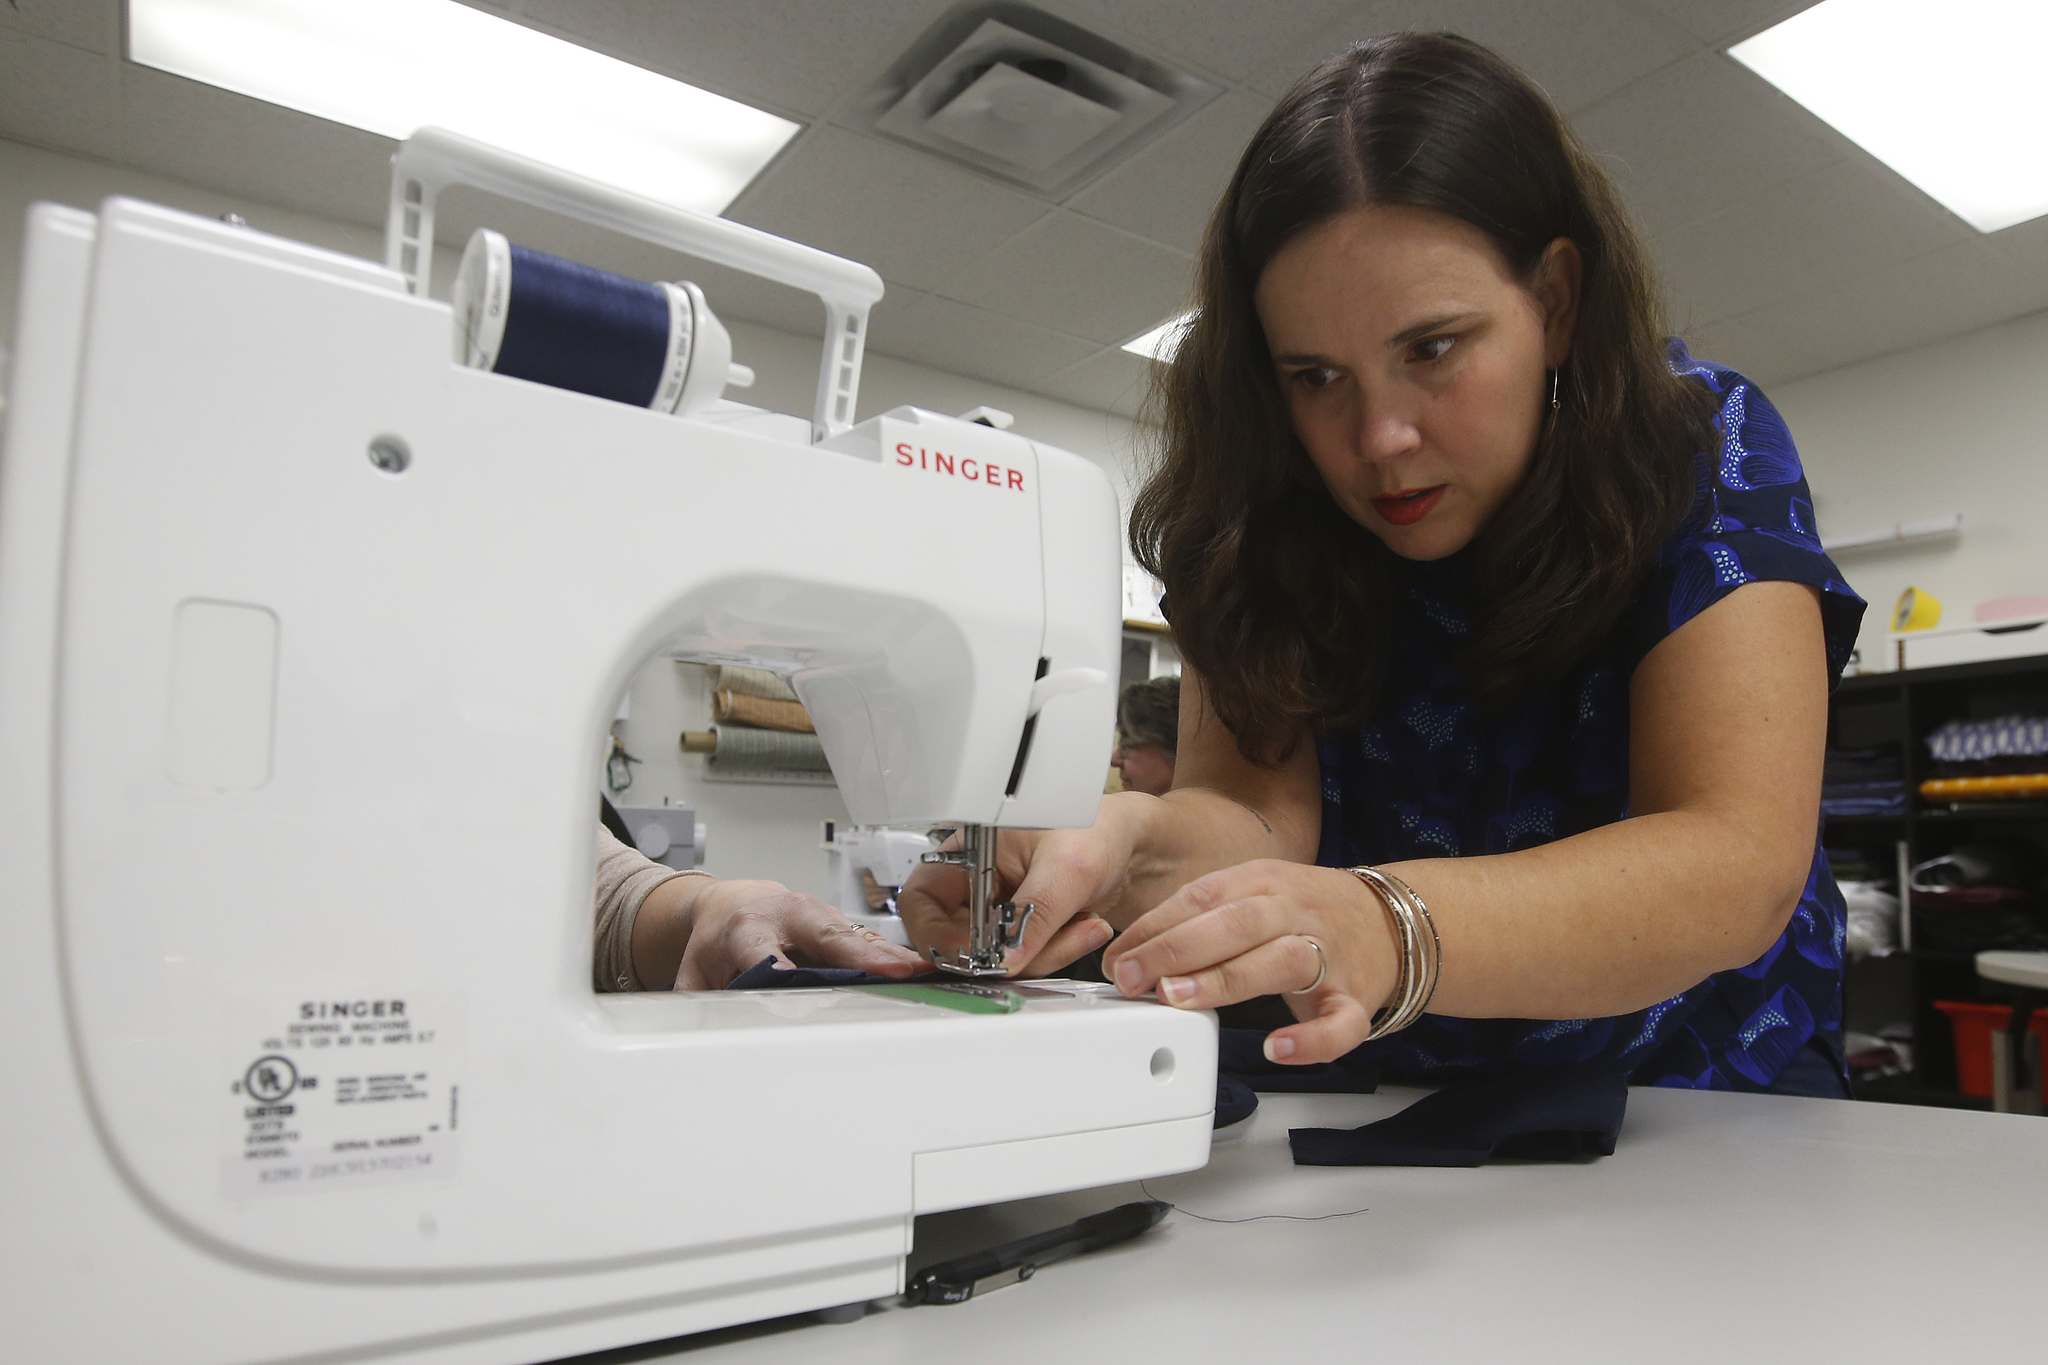 Sewing enthusiasts happy to share passion and expertise with eager beginners